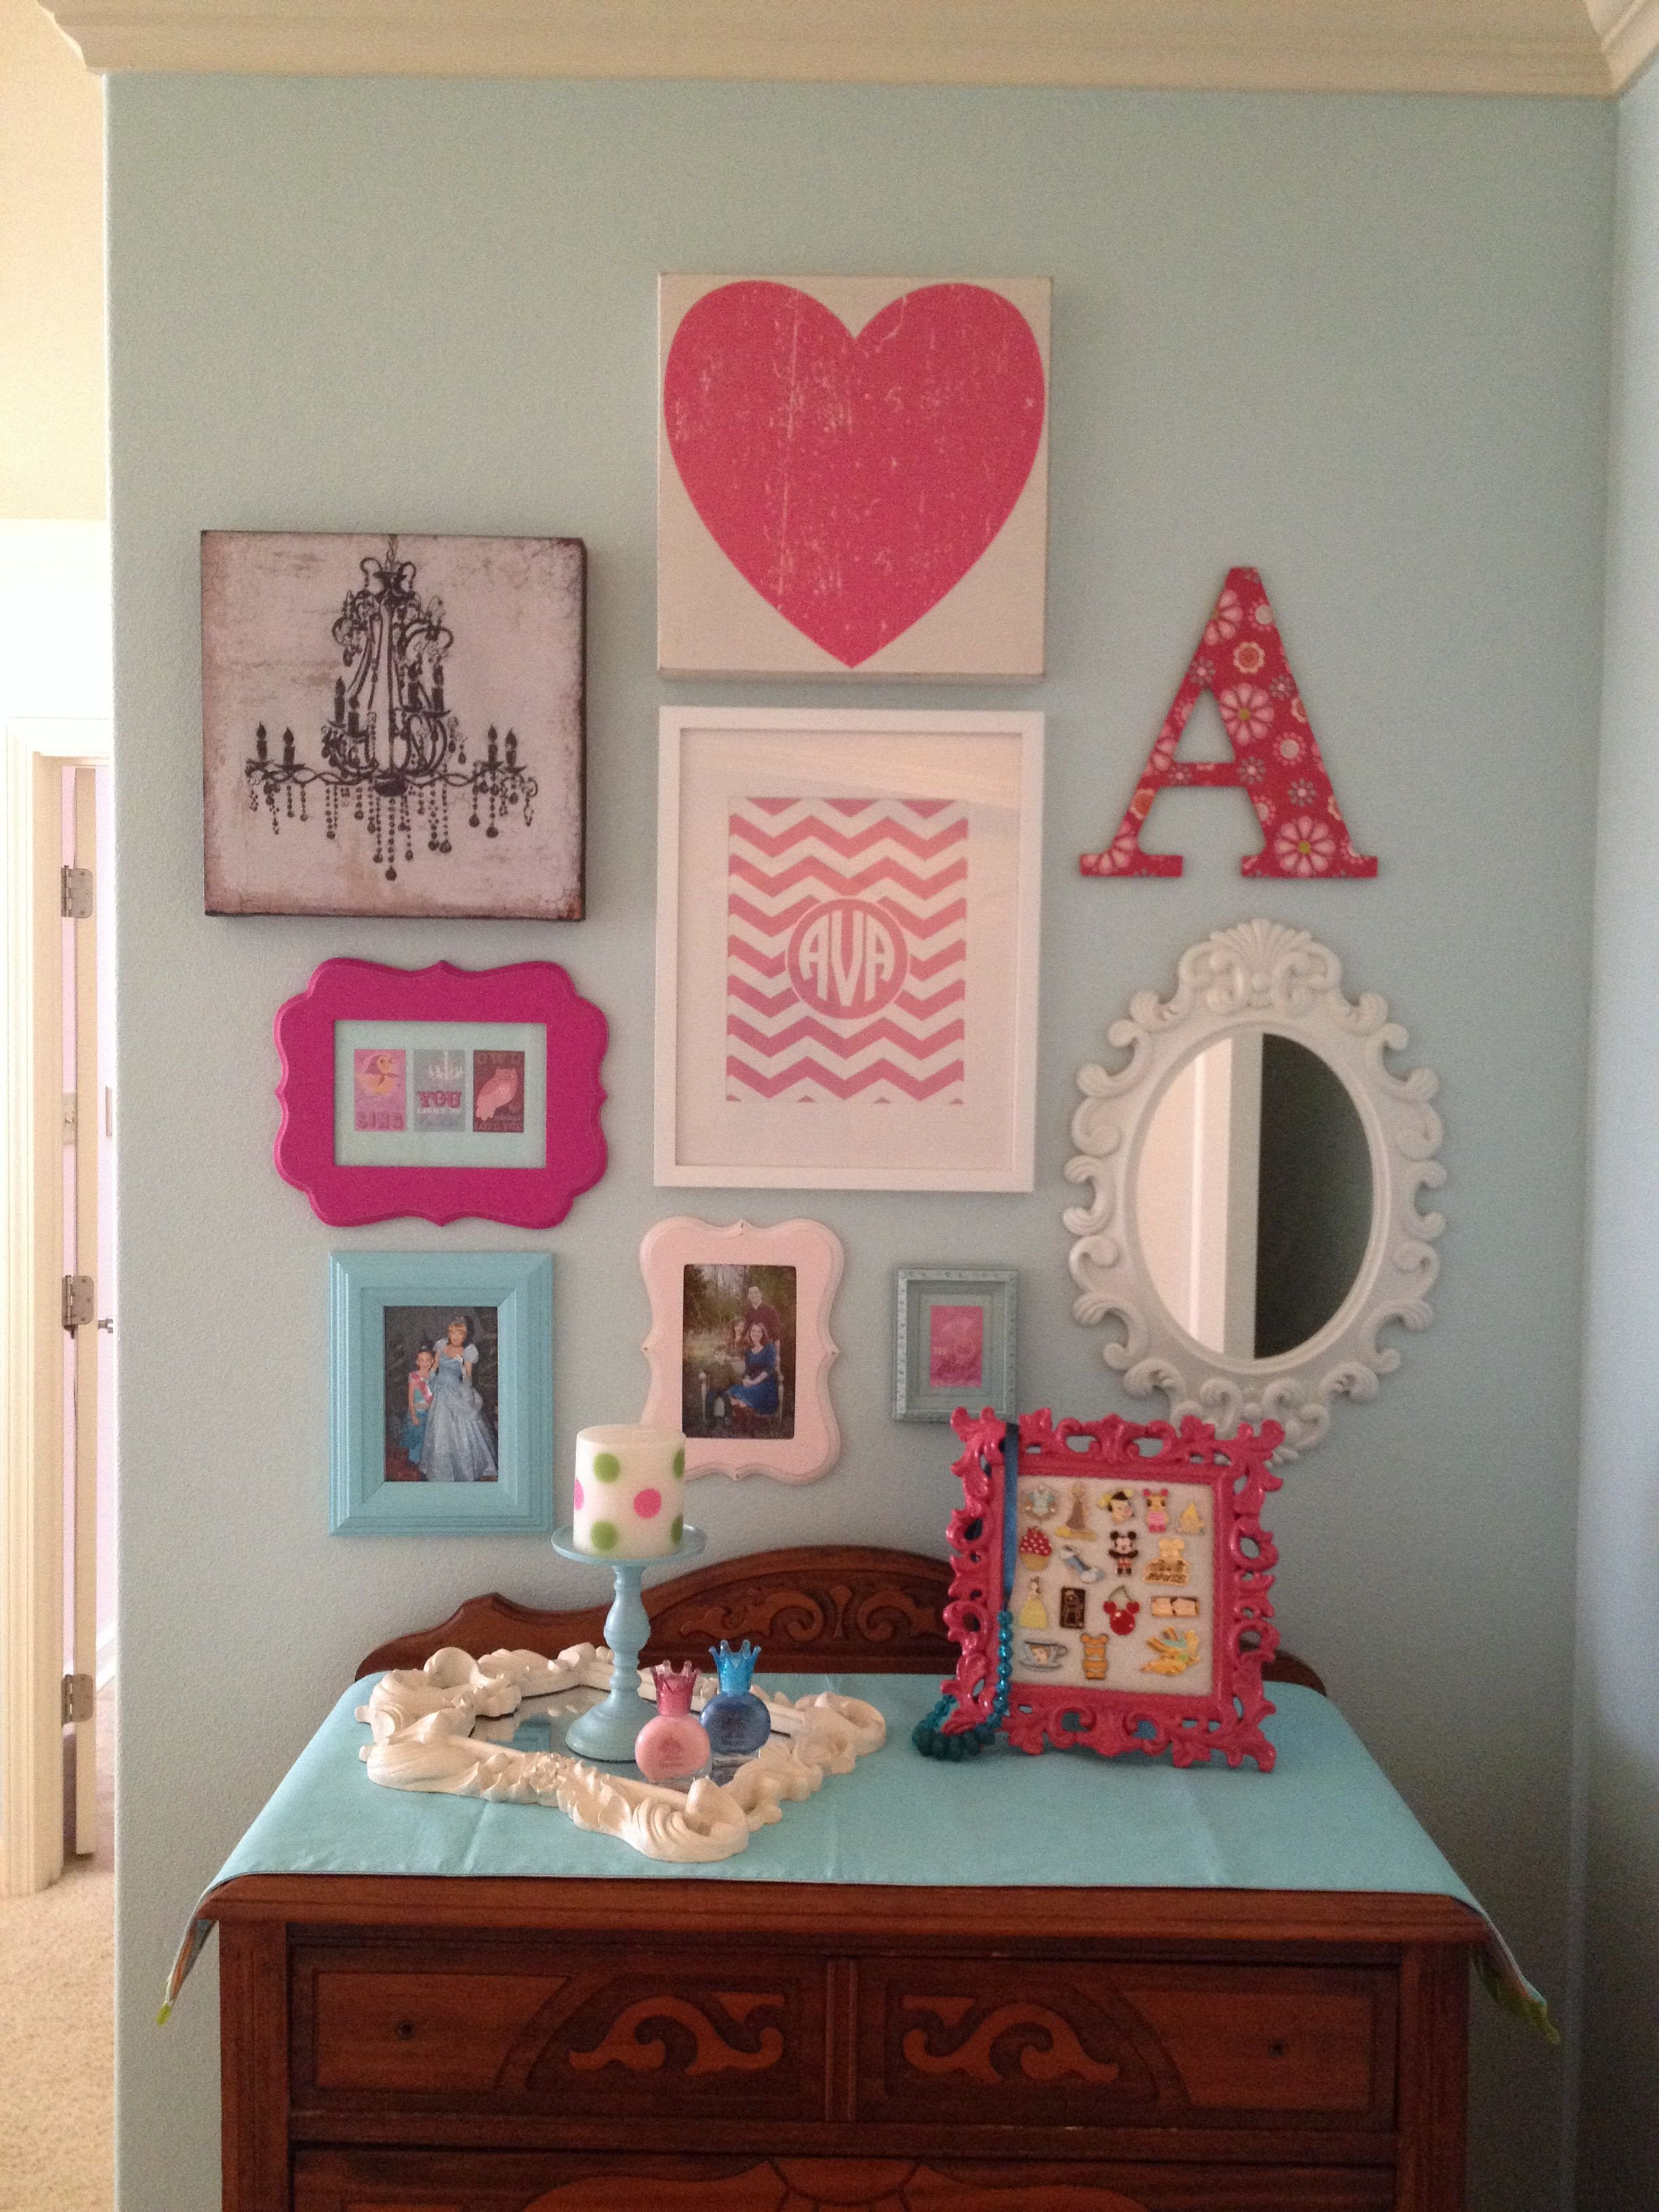 Wall Art Ideas for Bedroom Inspirational Girls Room Gallery Wall